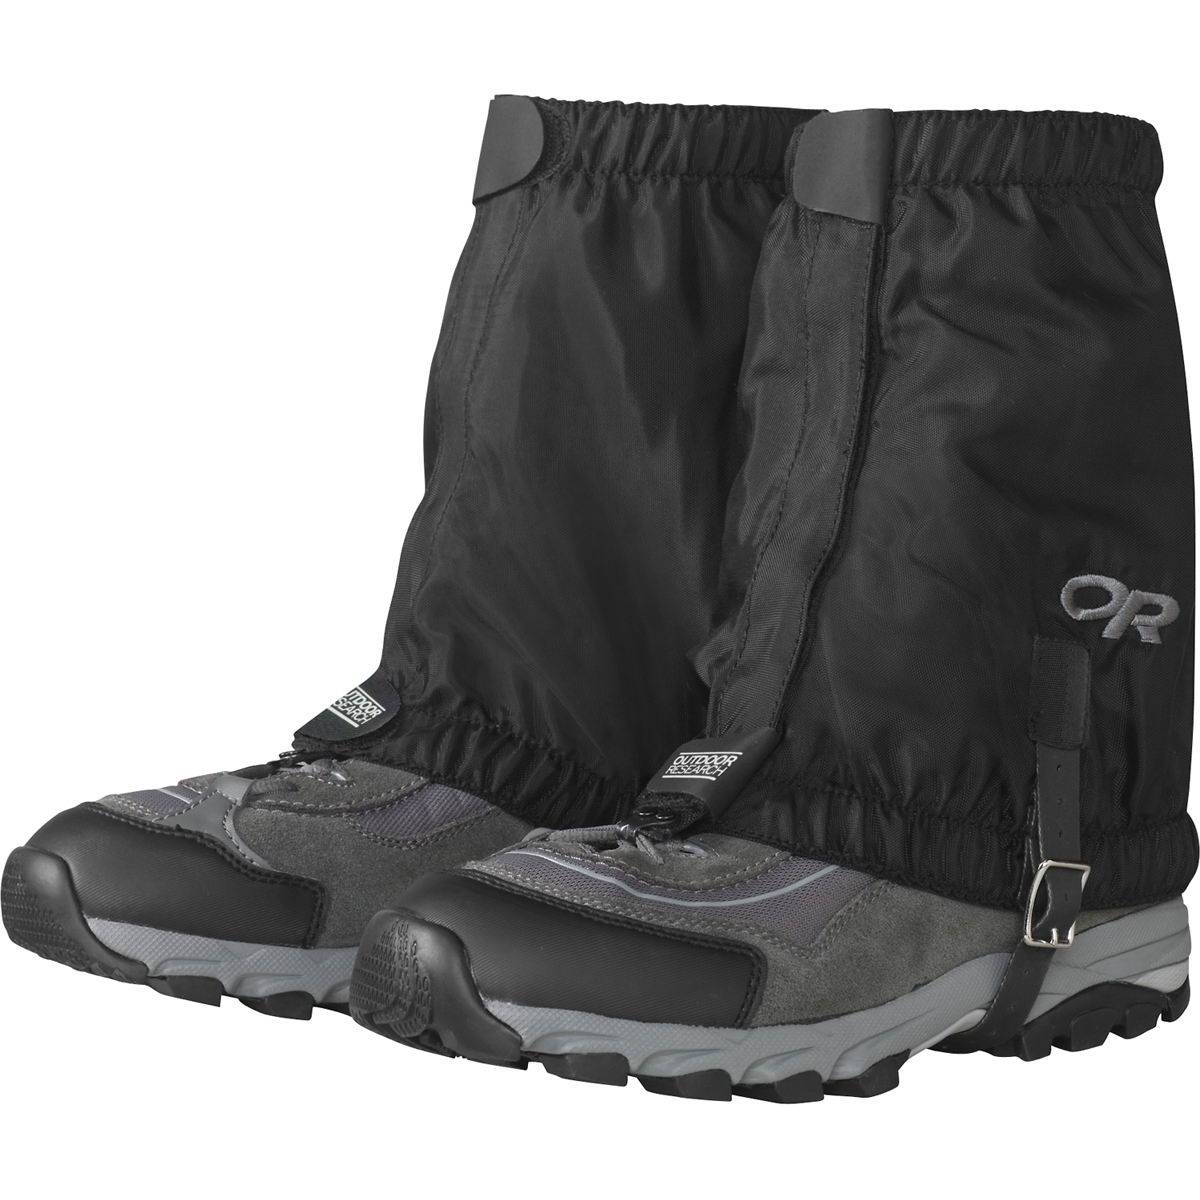 Outdoor Research Rocky Mountain Low Gaiters - Gamaschen 37/41